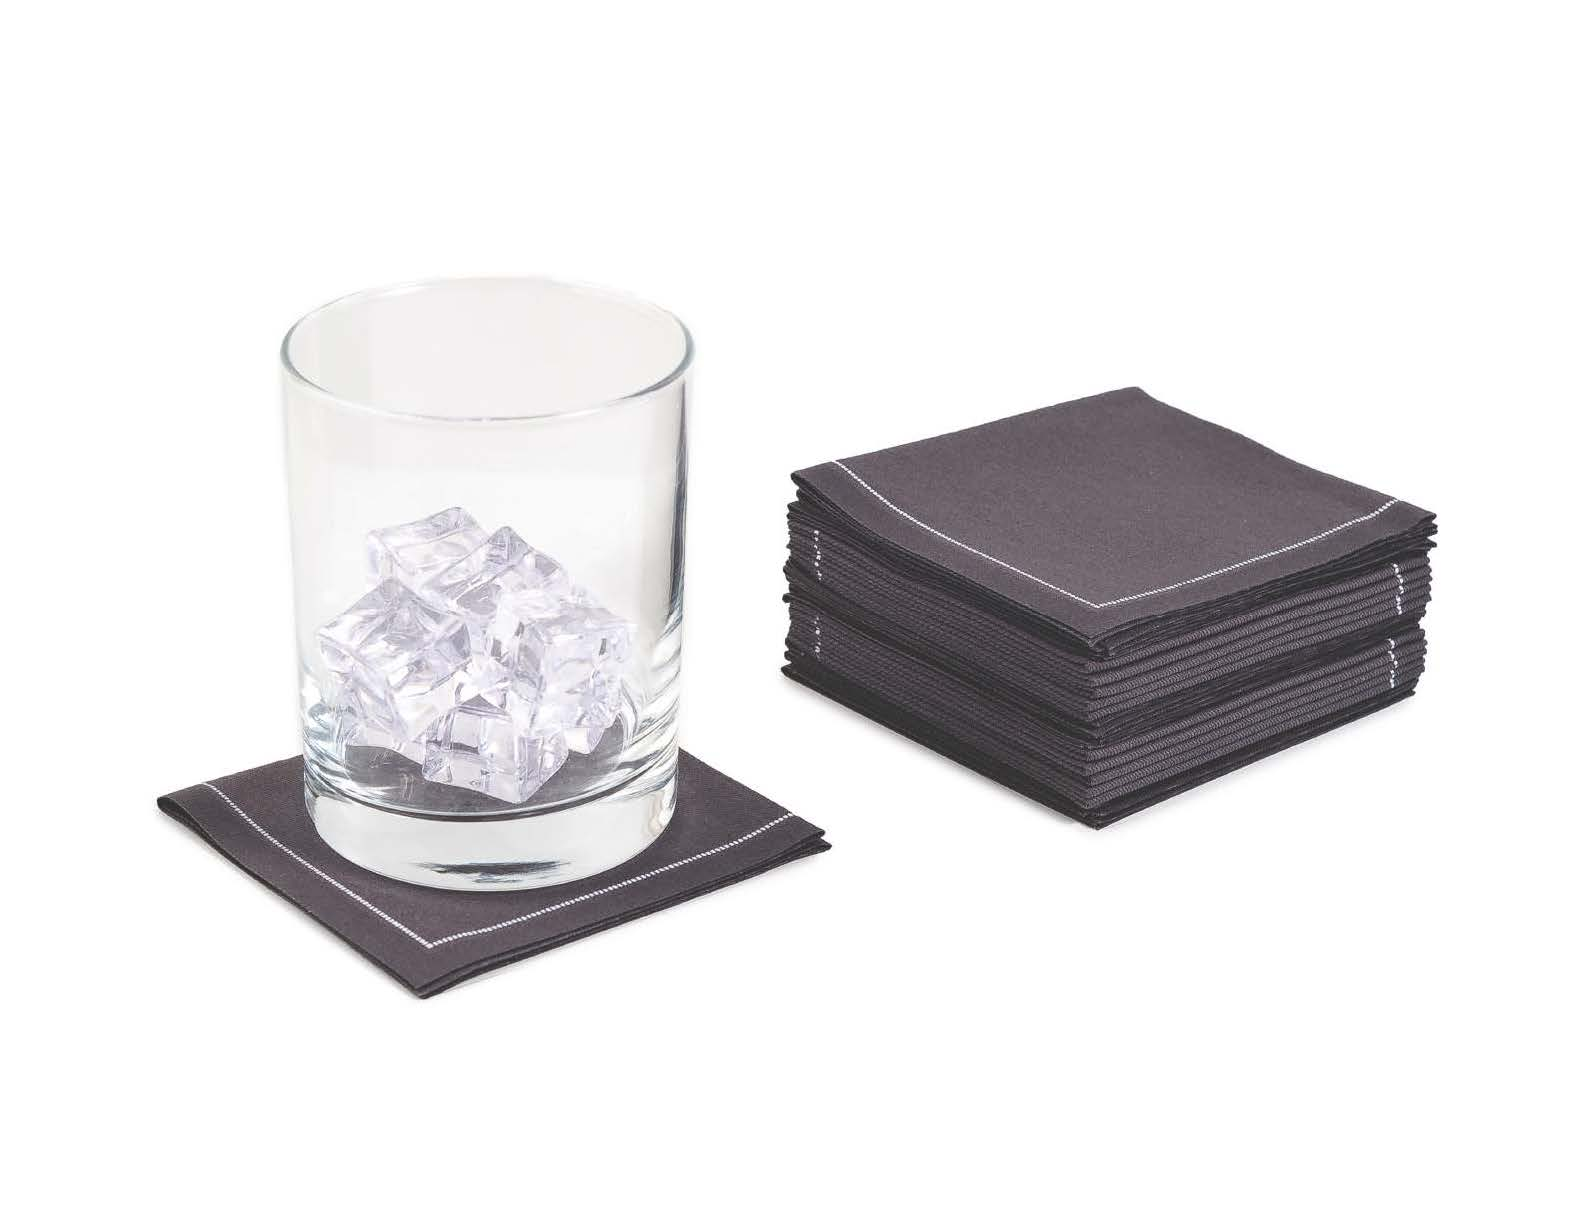 "Anthracite Grey 1/4 Fold Cocktail - 8"" x 8"" (folded 4"" x 4"") - 30 units"